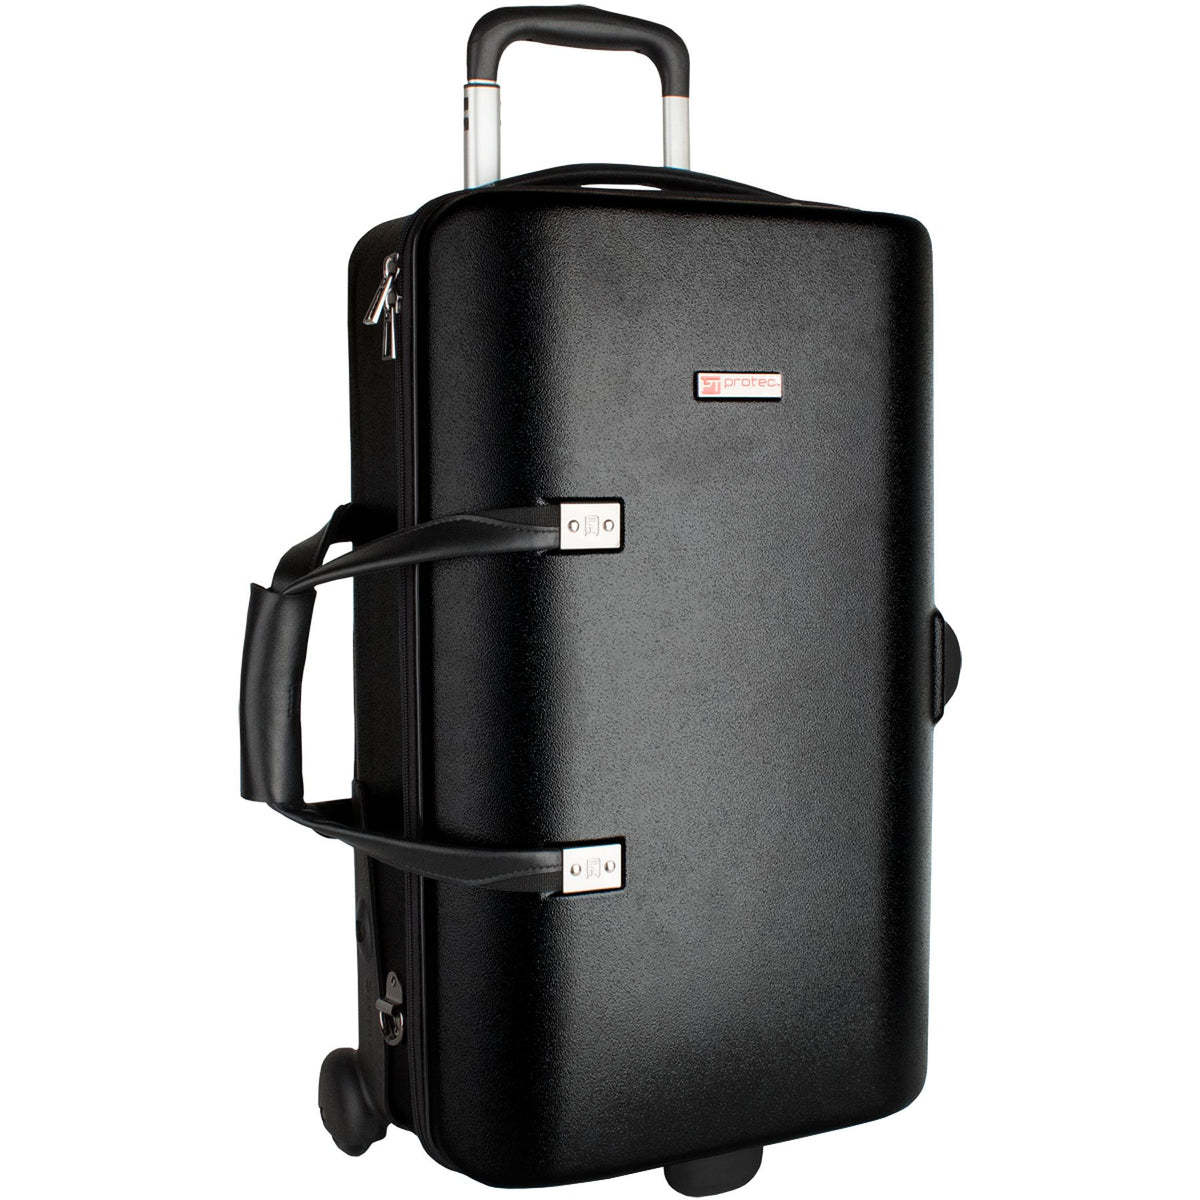 Protec - Single/Double/Triple Horn ZIP Case (Trumpet/Flugelhorn)-Case-Protec-Black-Music Elements